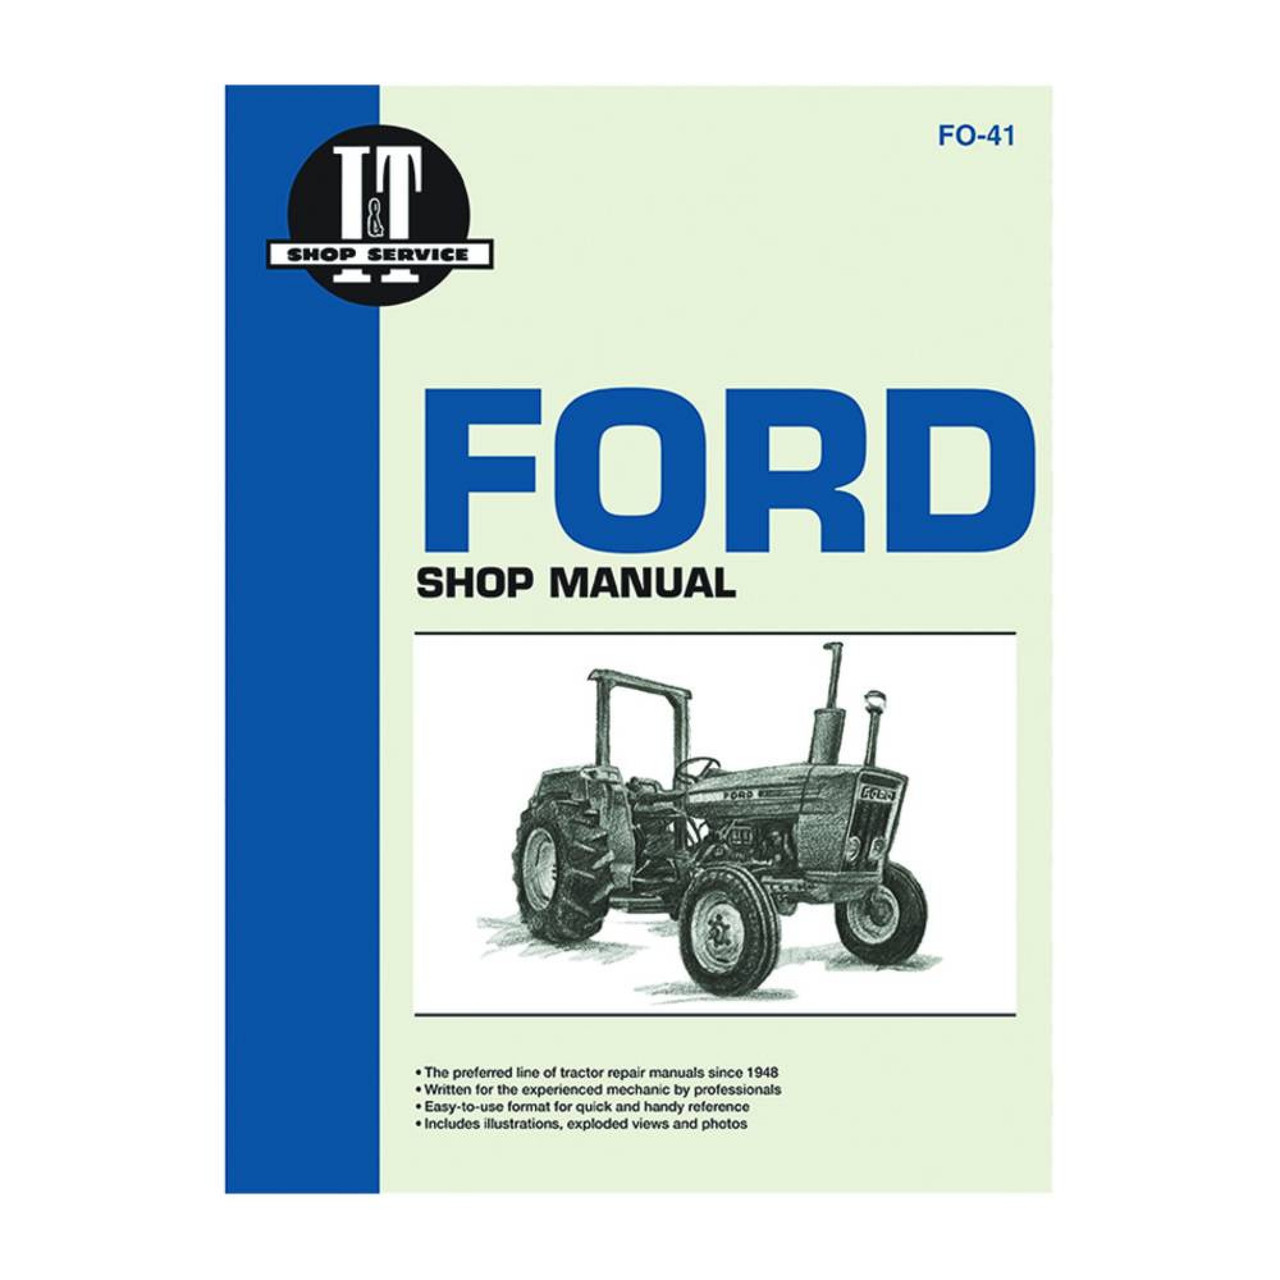 service manual ford new holland tractor fo 41 2310,2600,2610,3600d3d71ba2asa5oz cloudfront net 13000434 images 1115